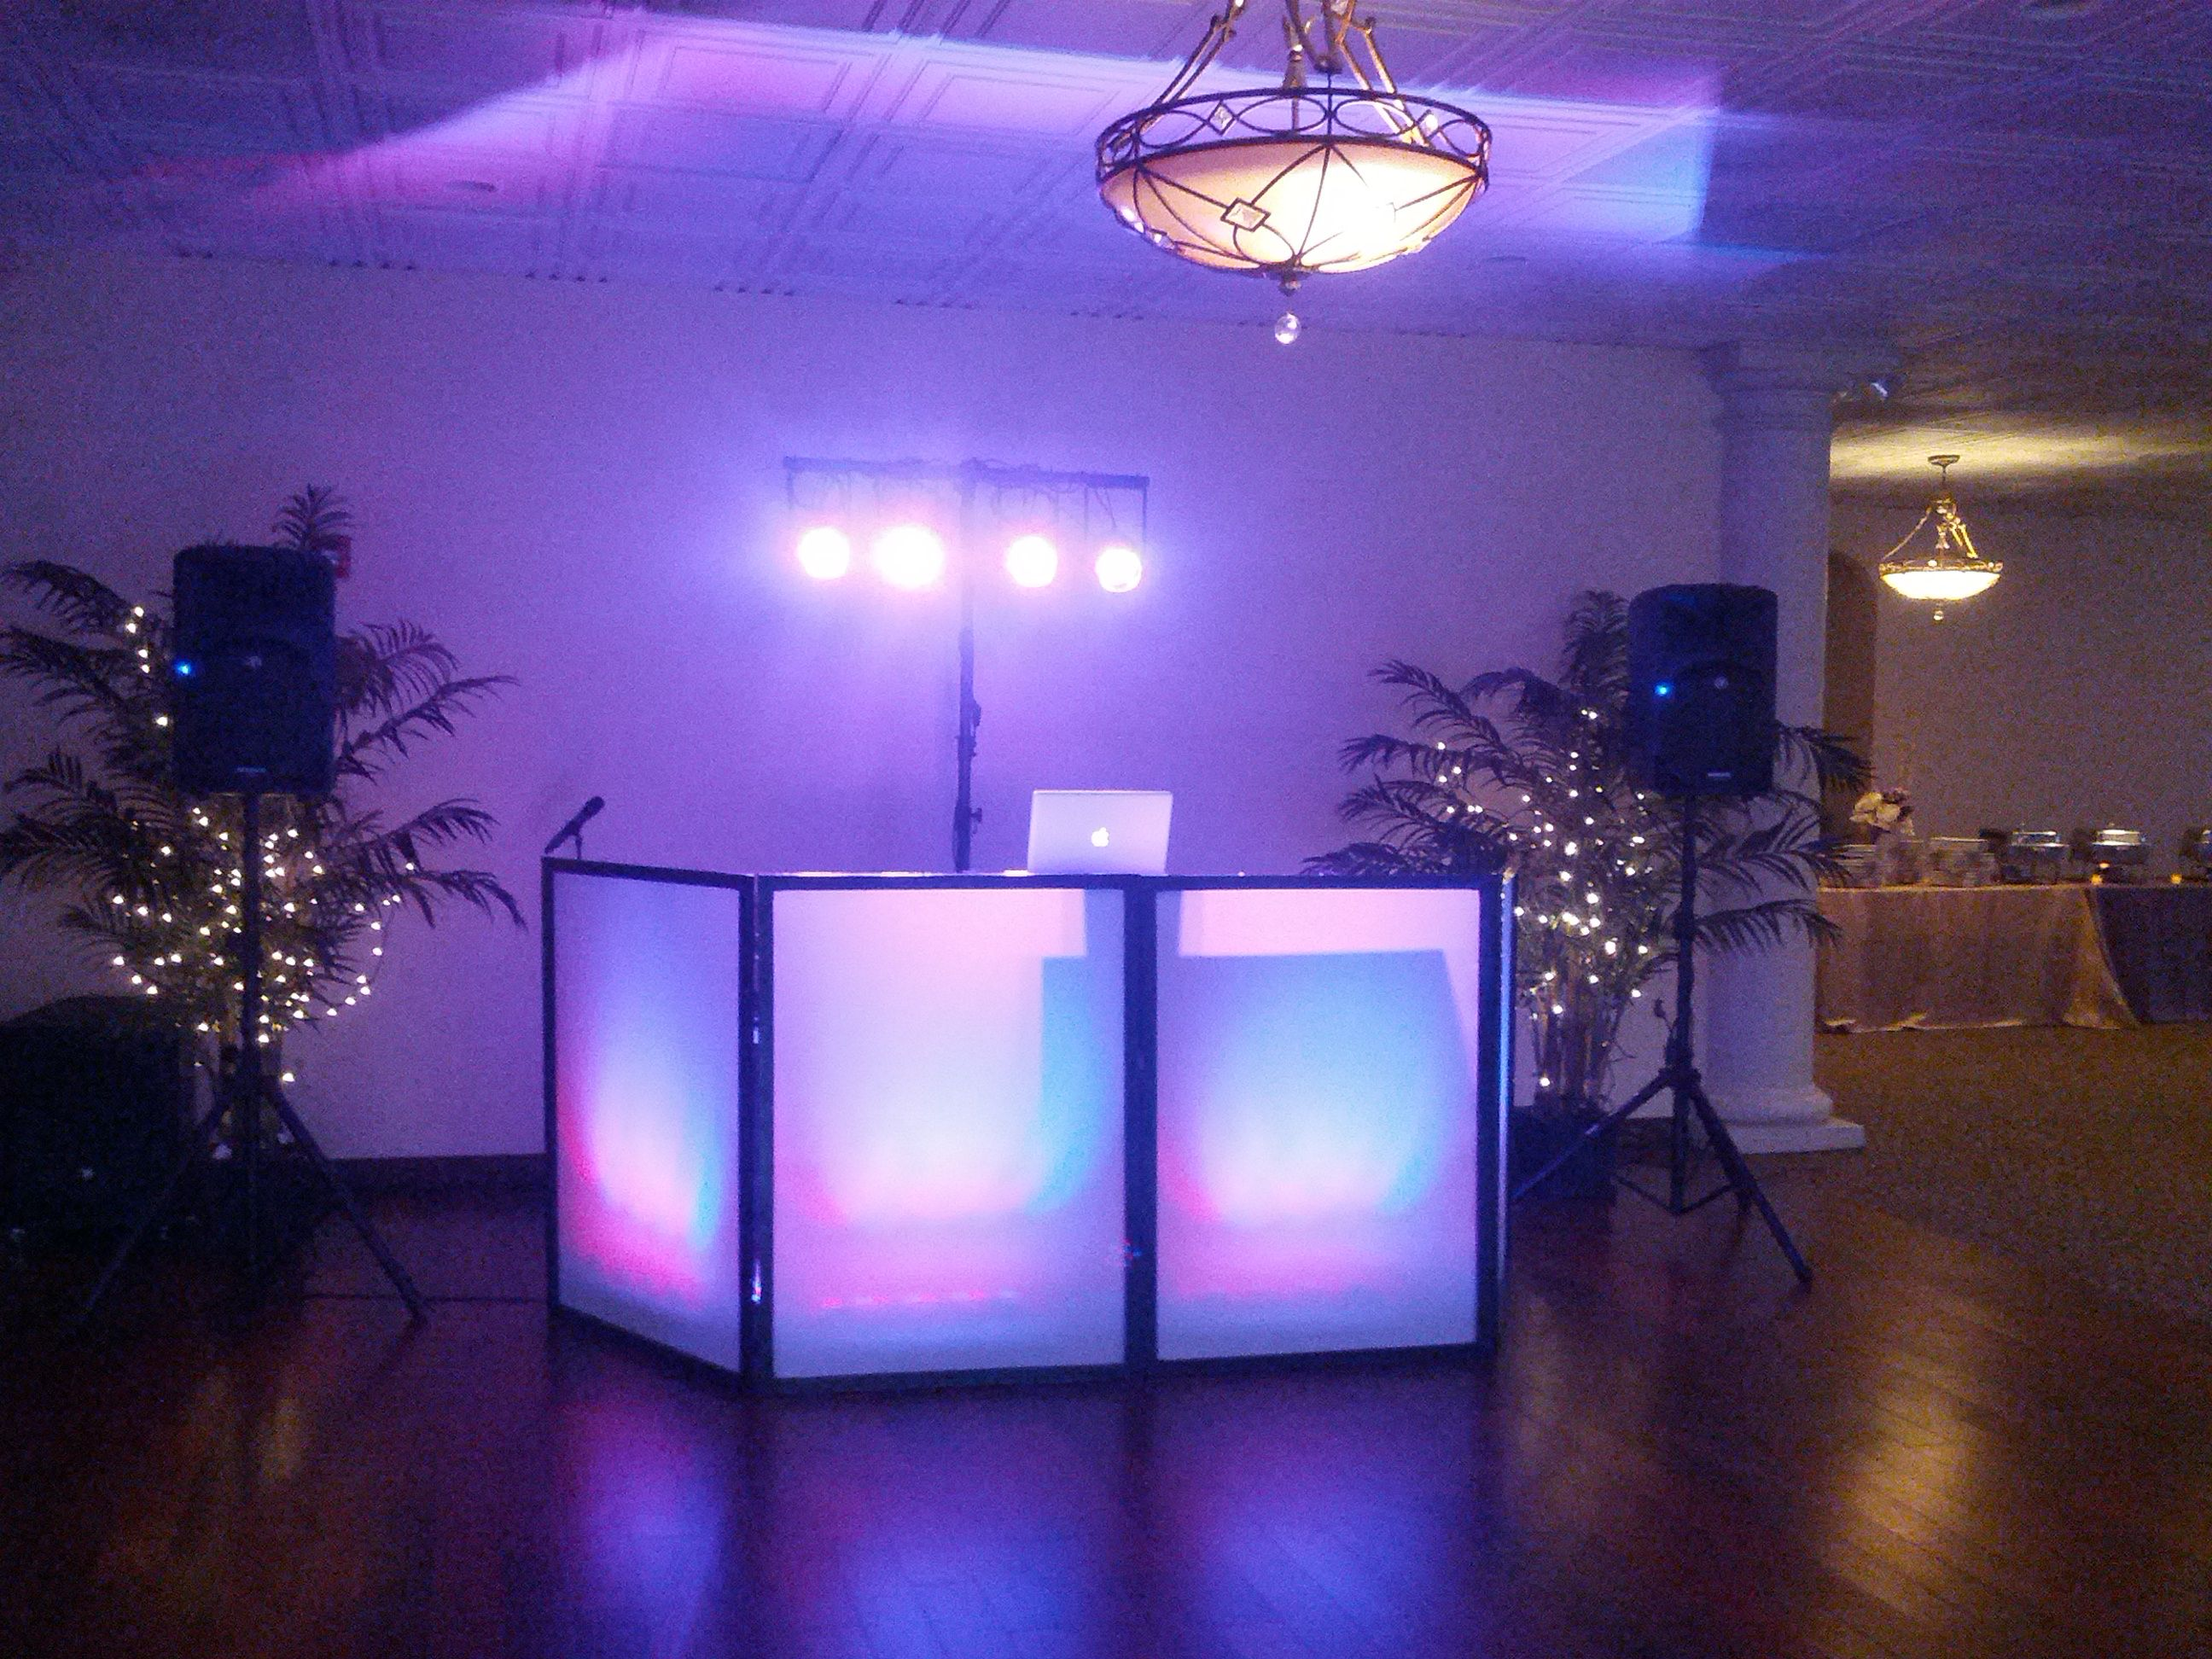 Dj Led Facade With Dance Floor T Bar Lighting Harbour View Musica Electronica Dj Musica